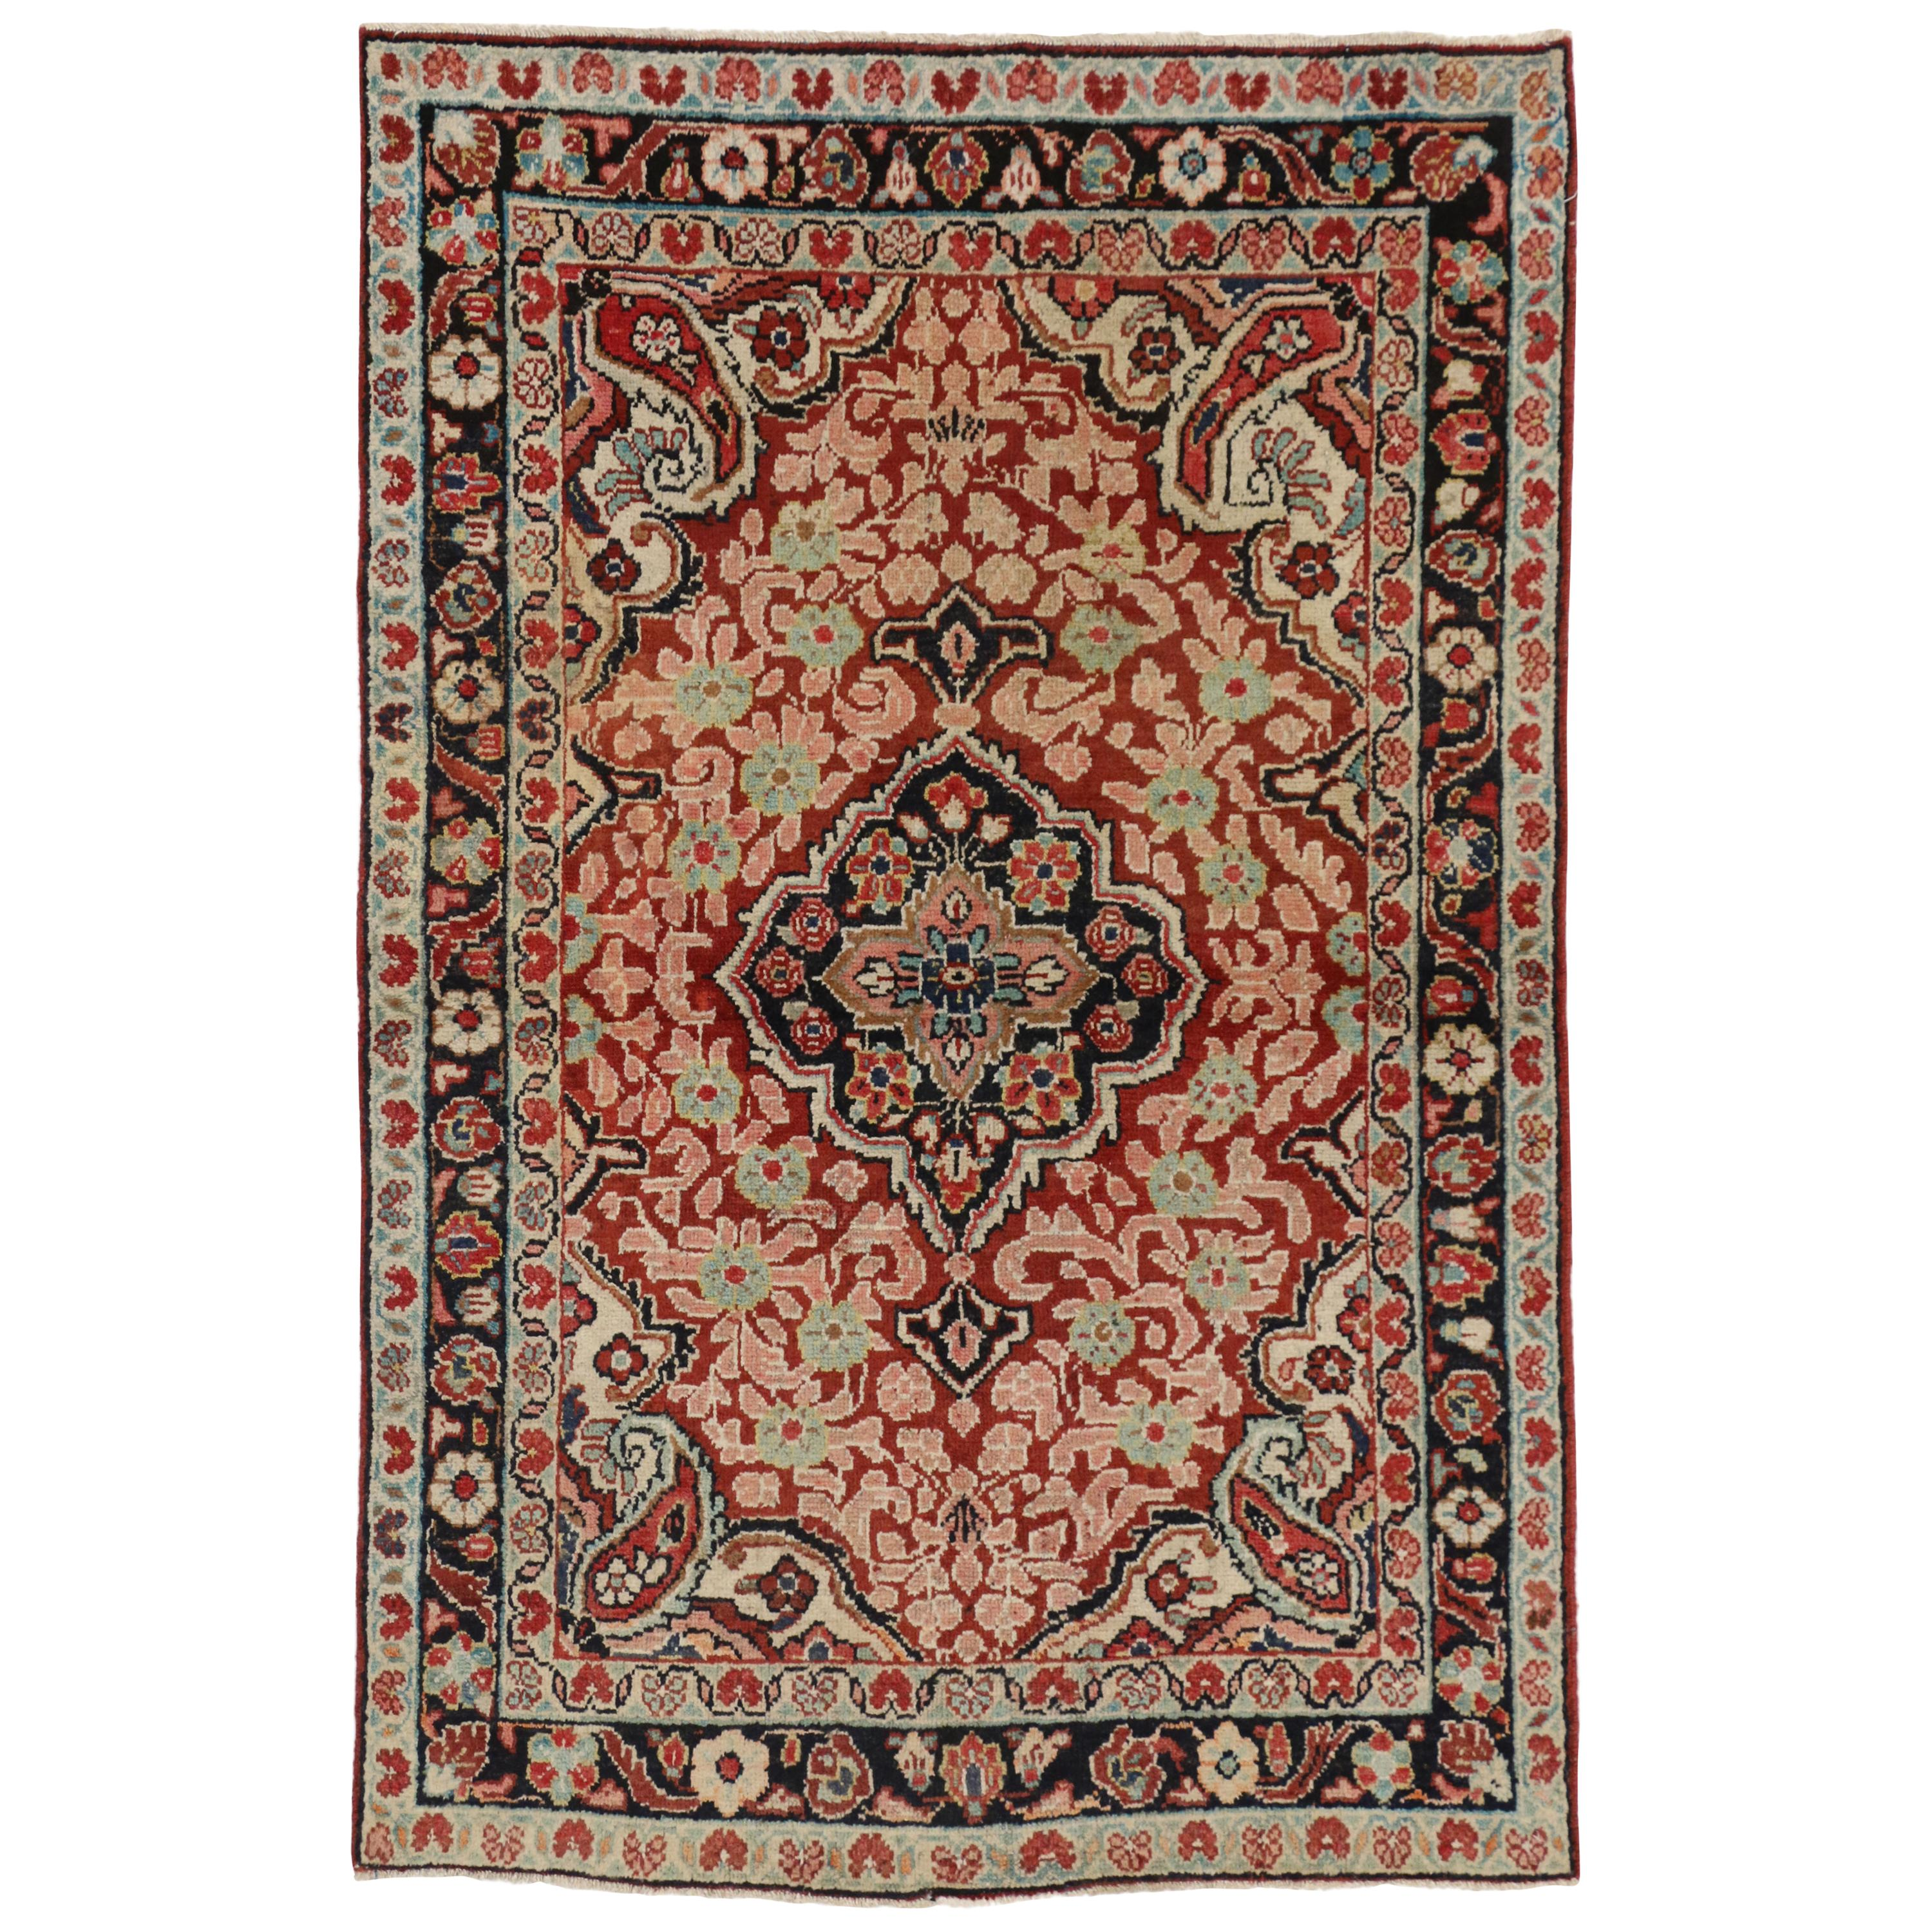 Vintage Persian Mahal Accent Rug with Traditional Victorian Style